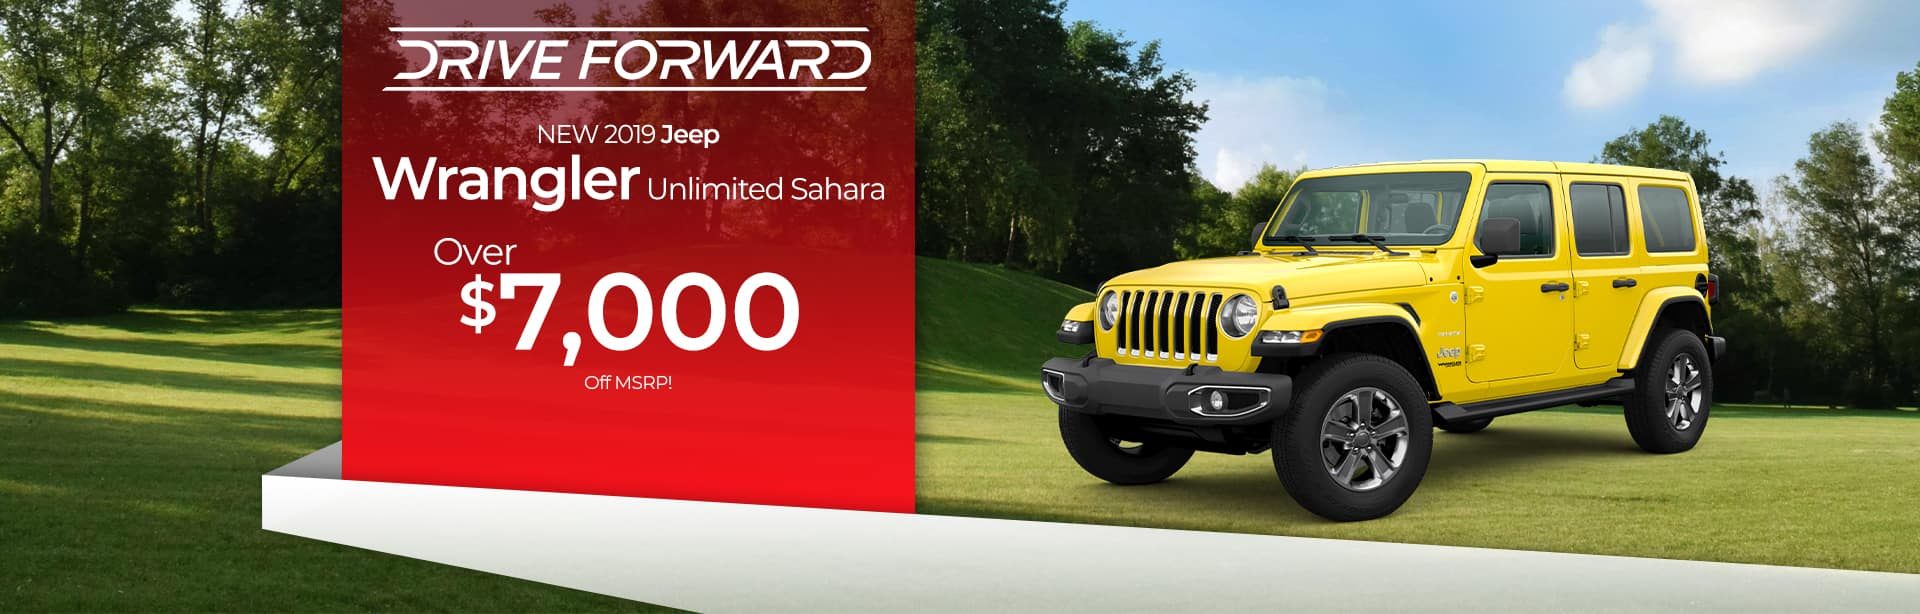 Save up to $7,000 off a New Jeep Wrangler near Fort Wayne, Indiana